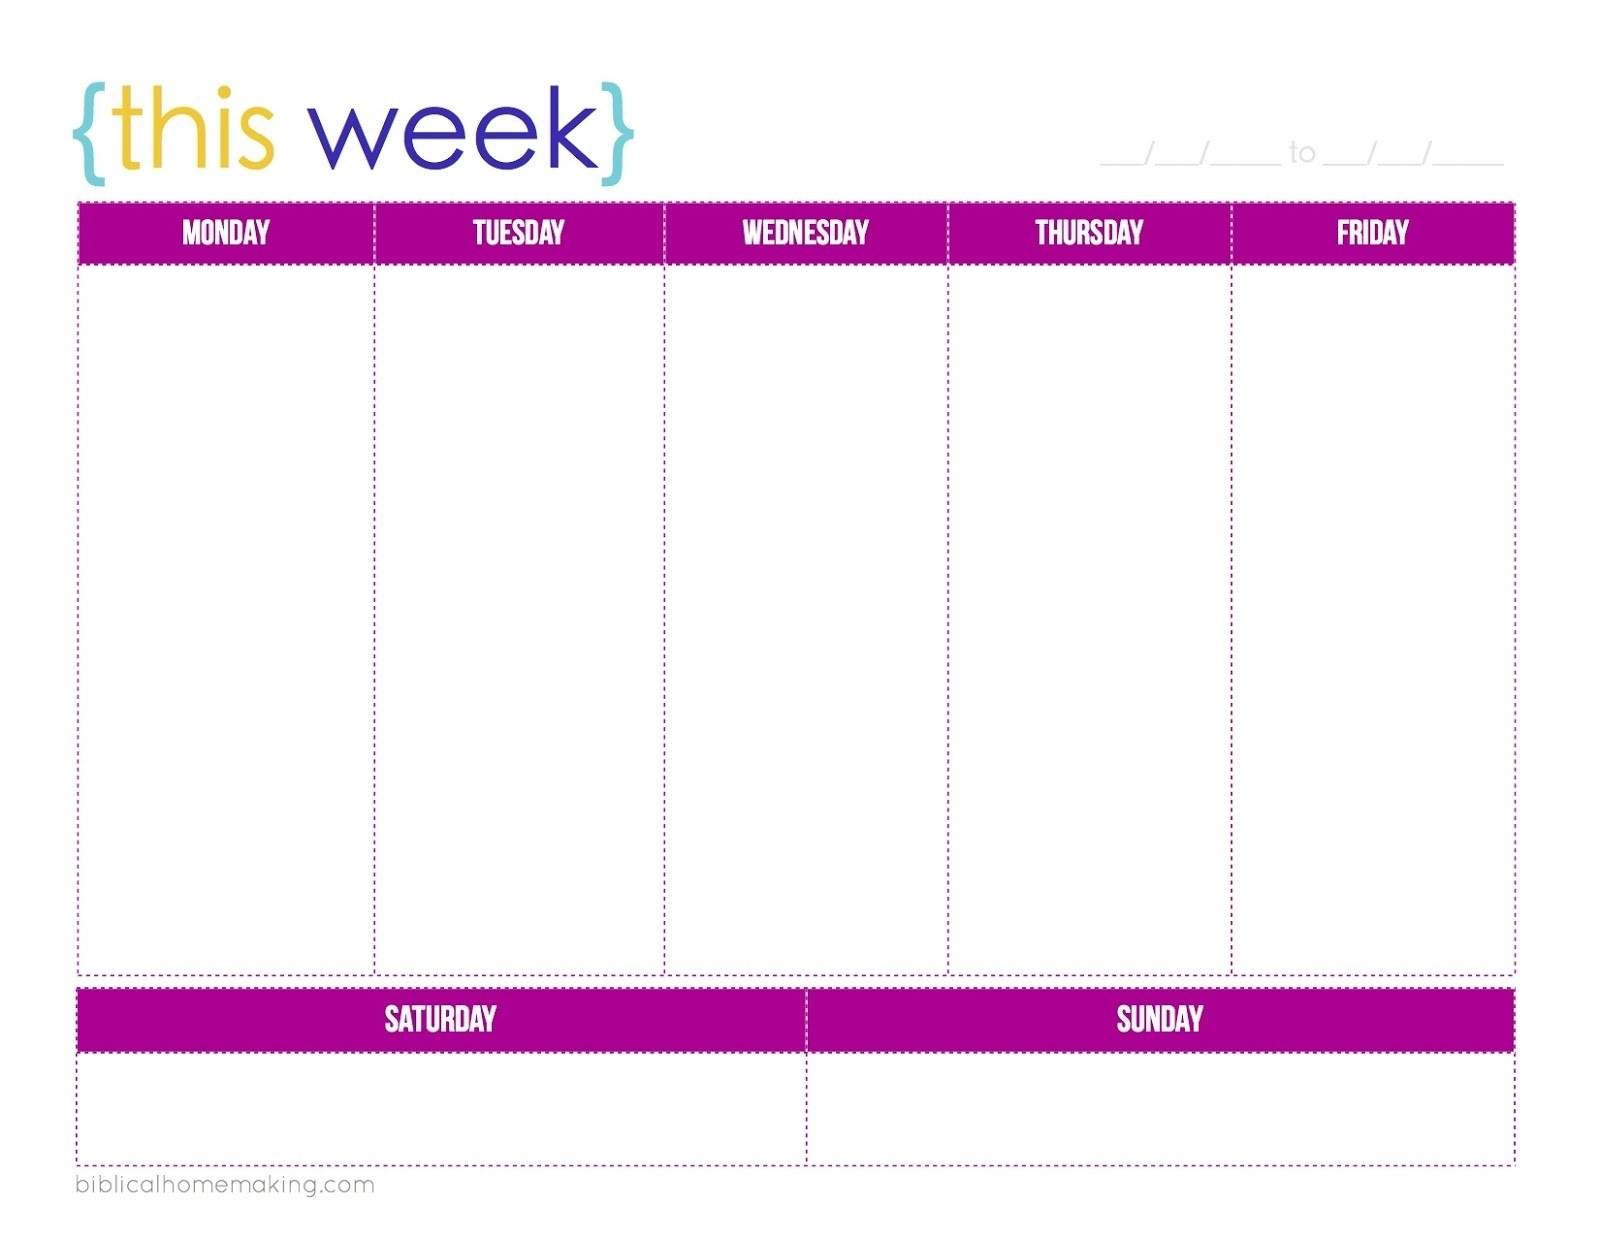 New One Week Printable Calendar | Free Printable Calendar